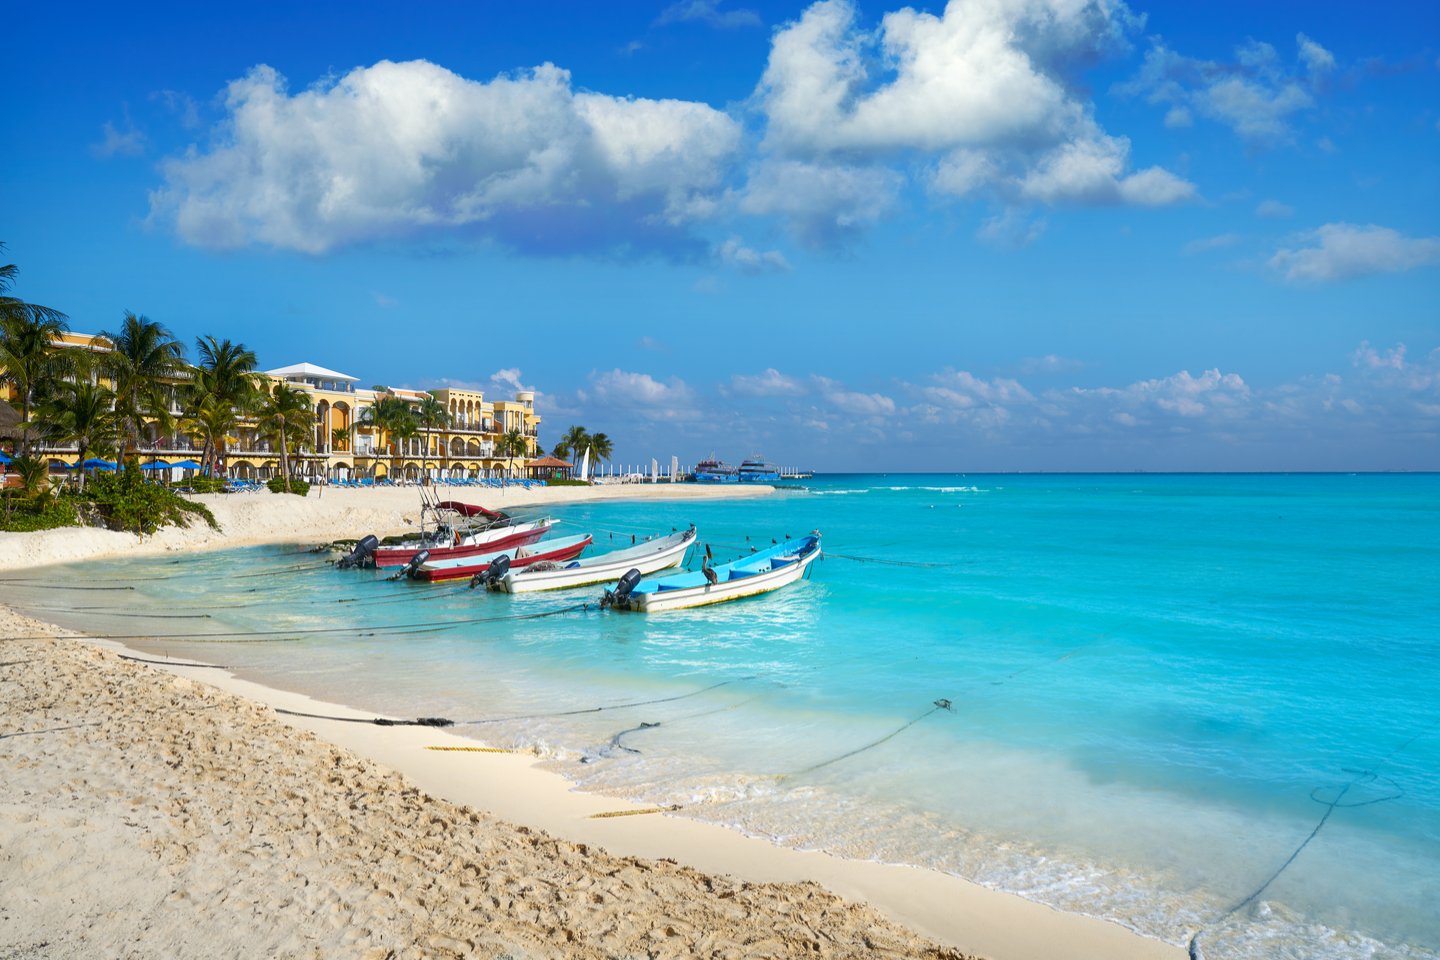 boats looking out to the sea from the Playa Del Carmen beach